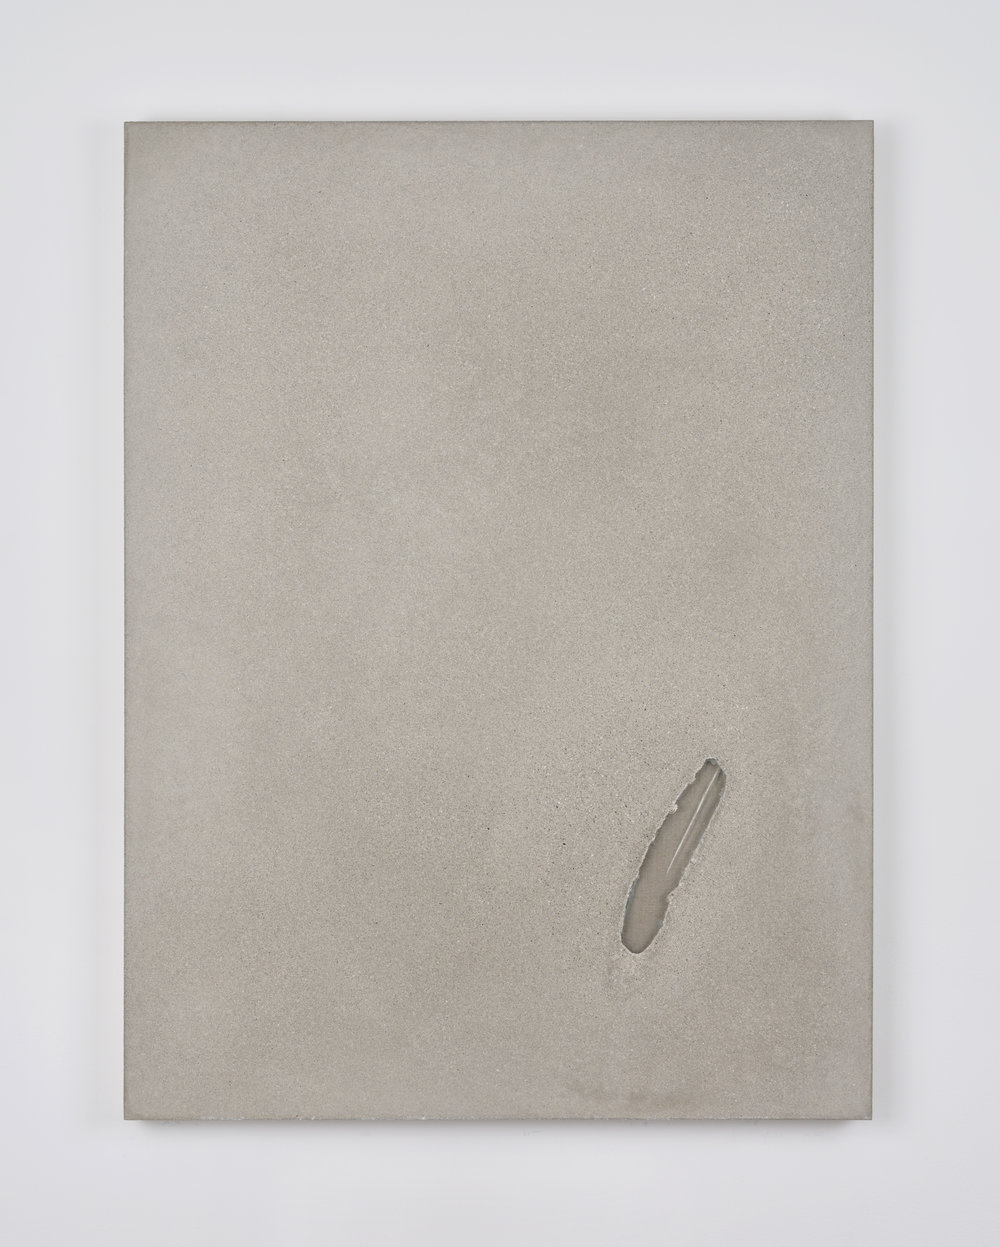 Analia Saban, Slab Foundation with Glass Opening #3, 2015 glass and concrete on canvas 101,5 x 76 x 6 cm - 40 x 30 x 2 1/4 inches